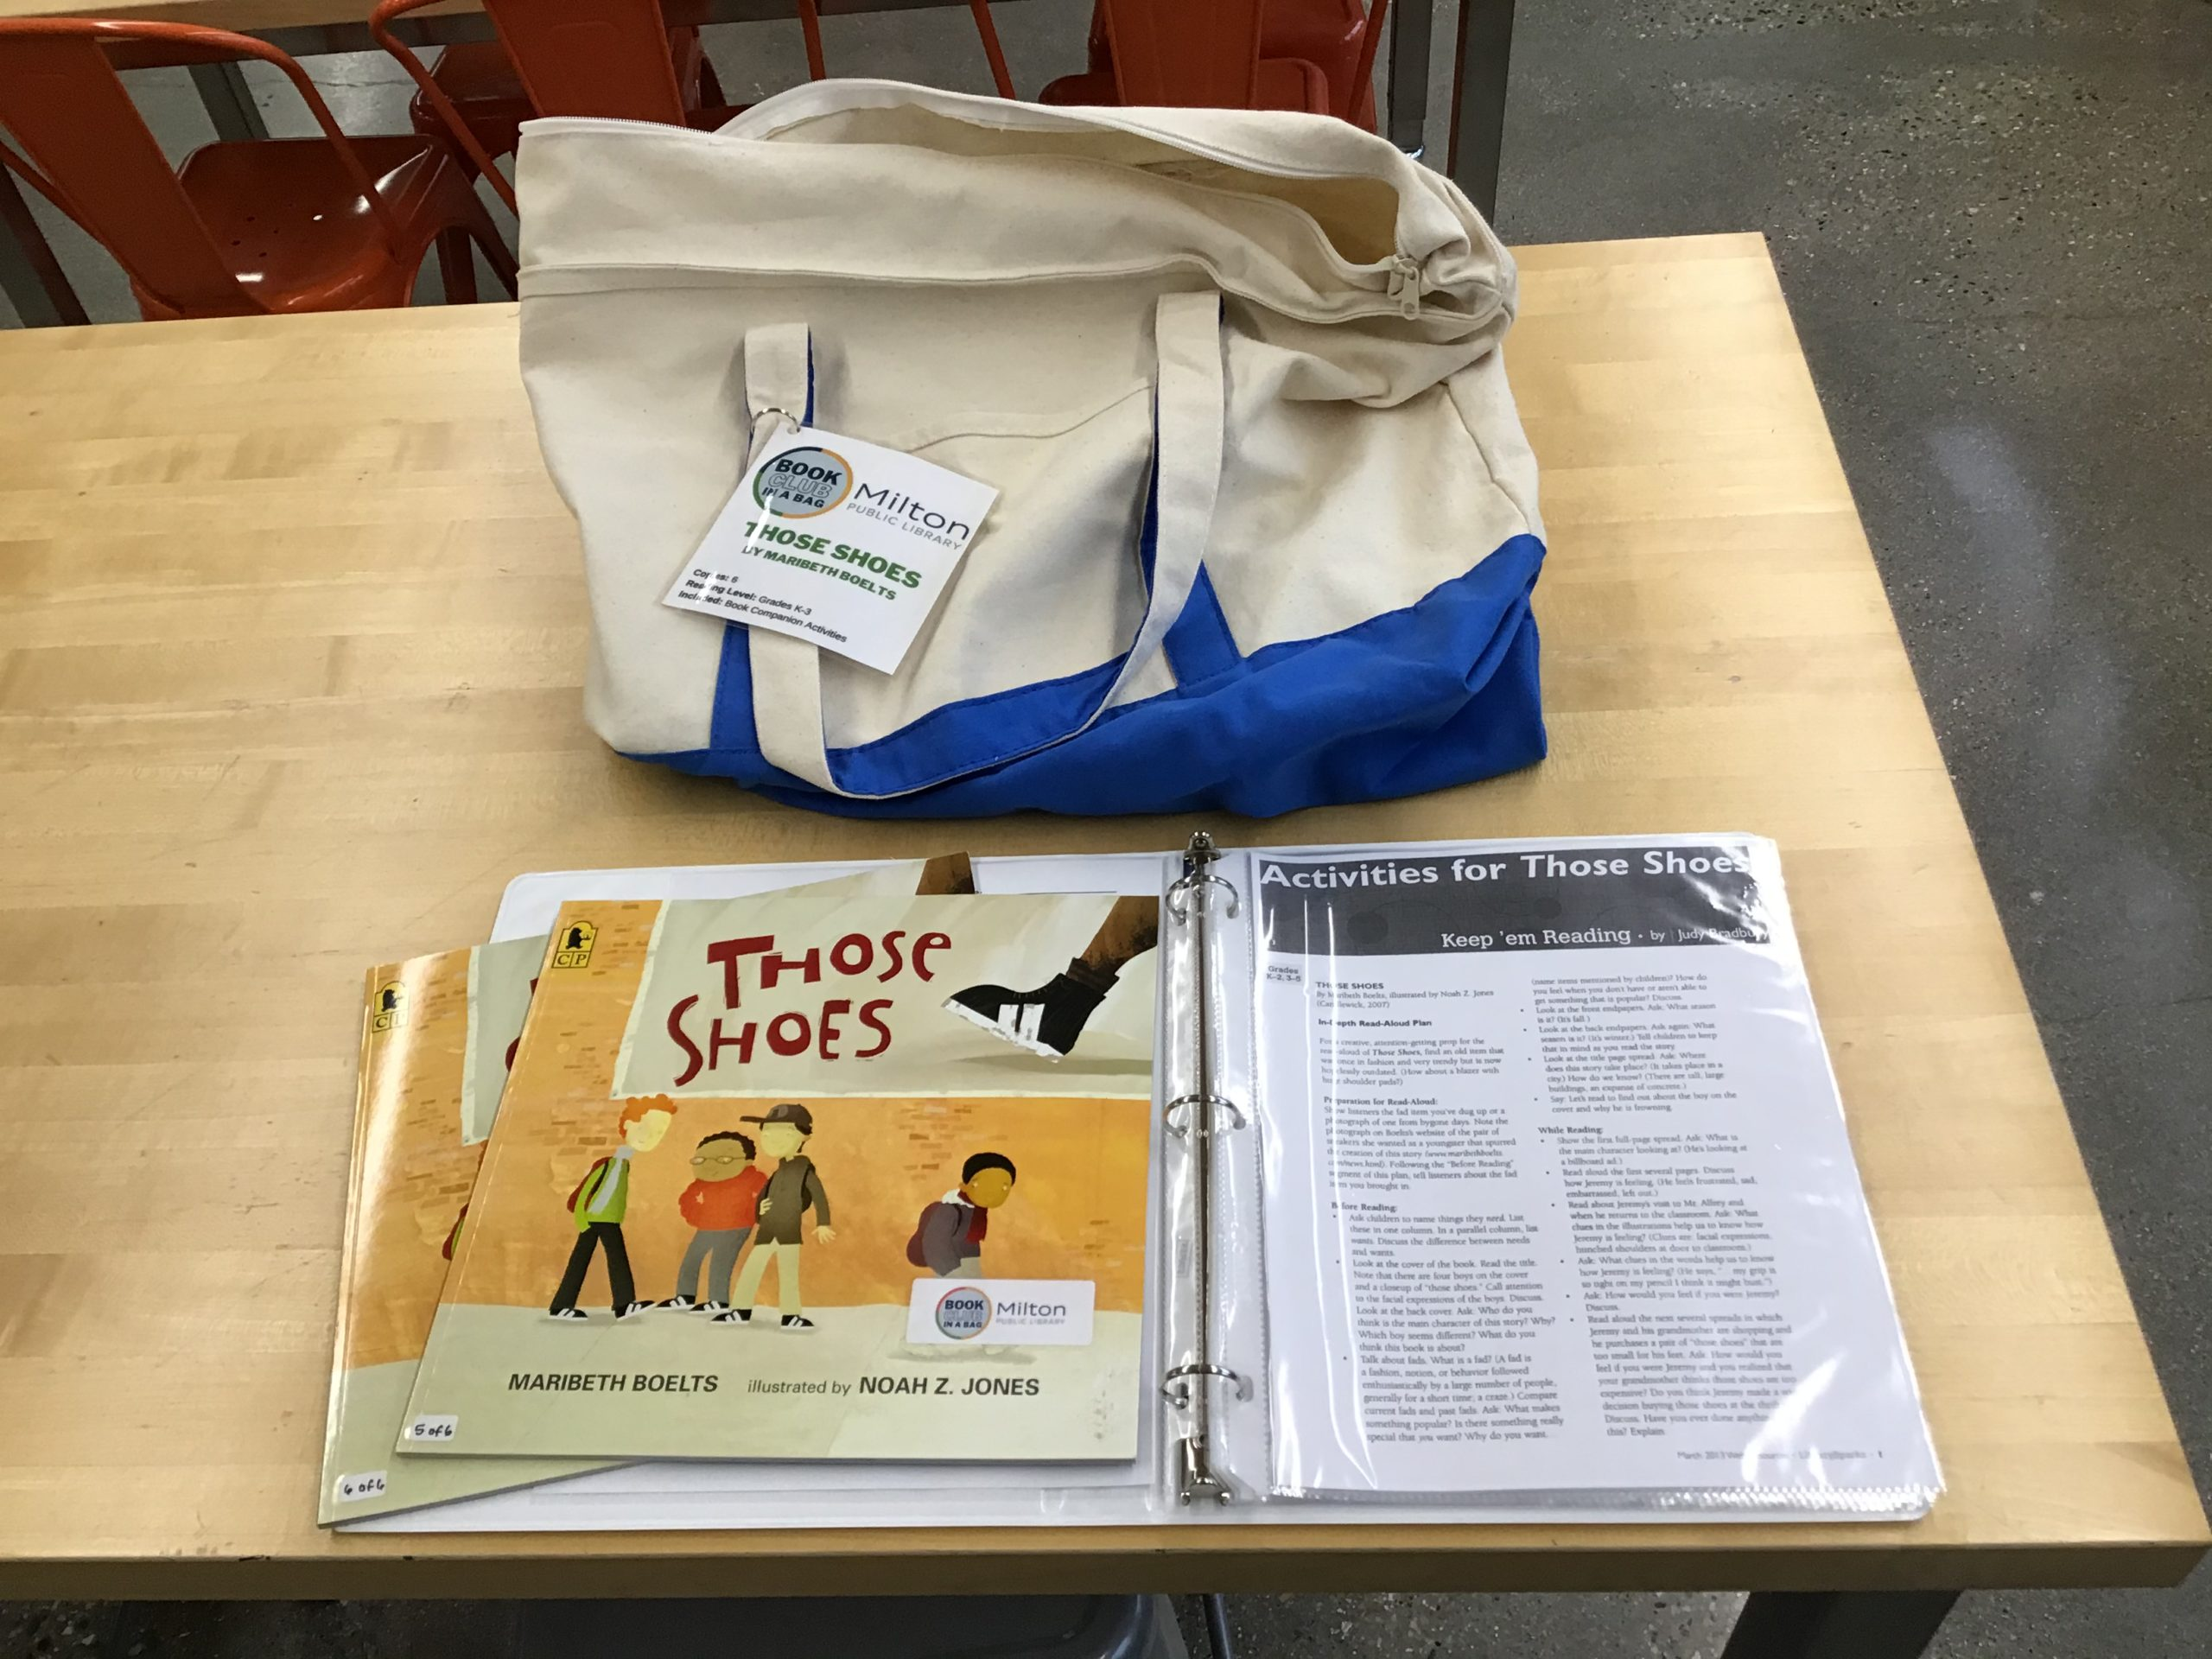 Canvas bag with two copies of Those Shoes displayed on the book club notes binder.